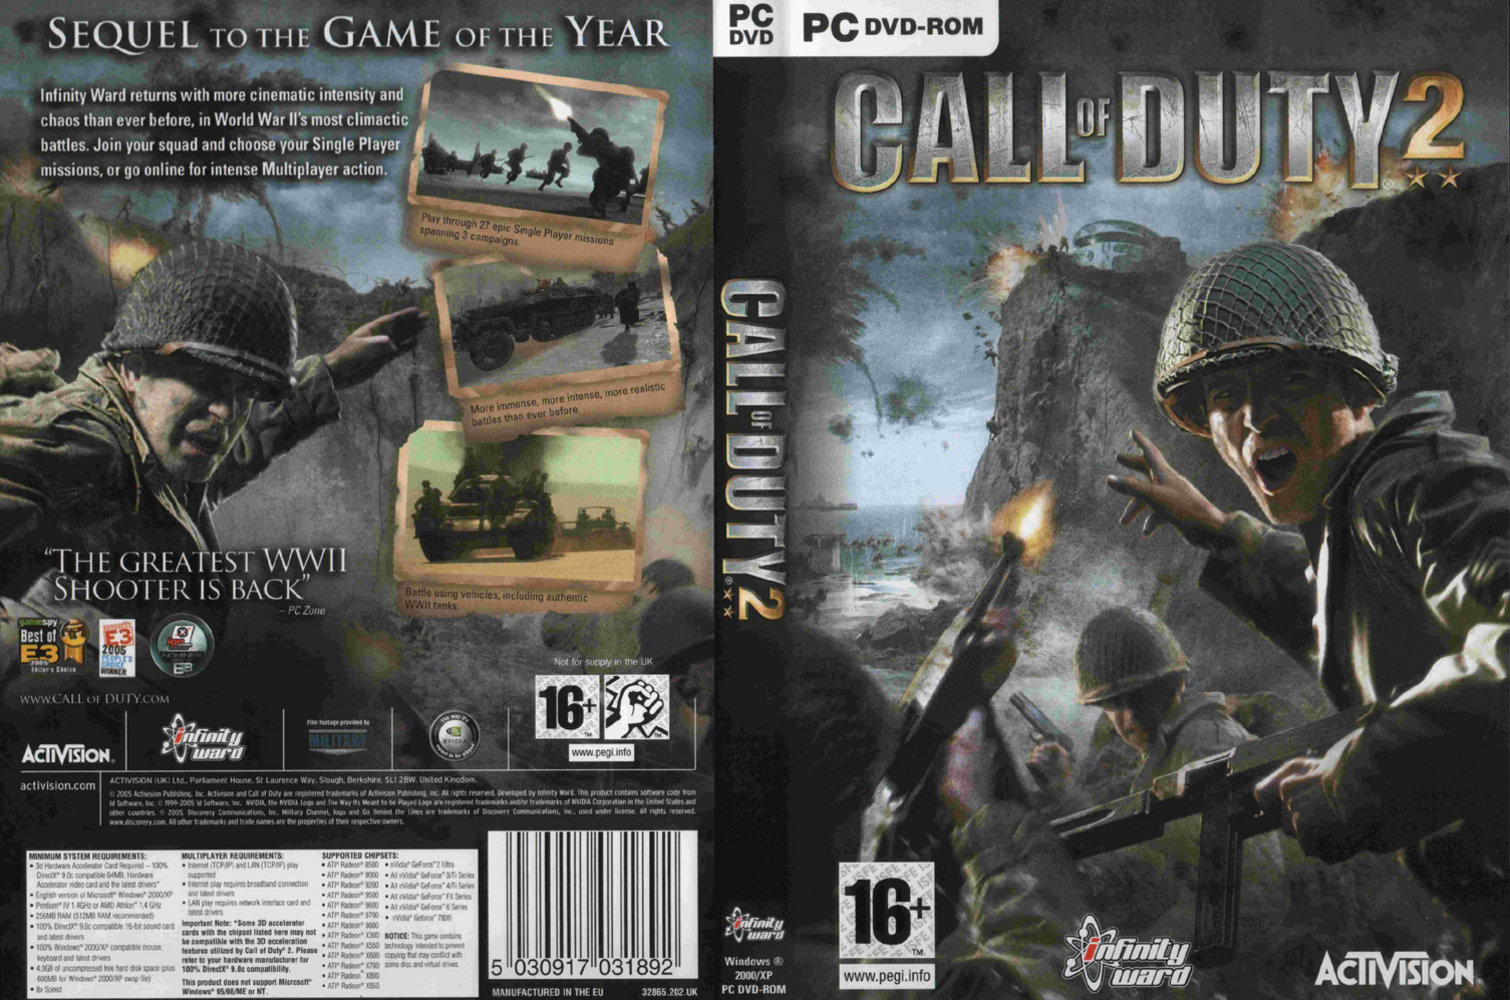 Call Of Duty 2 - PC Game